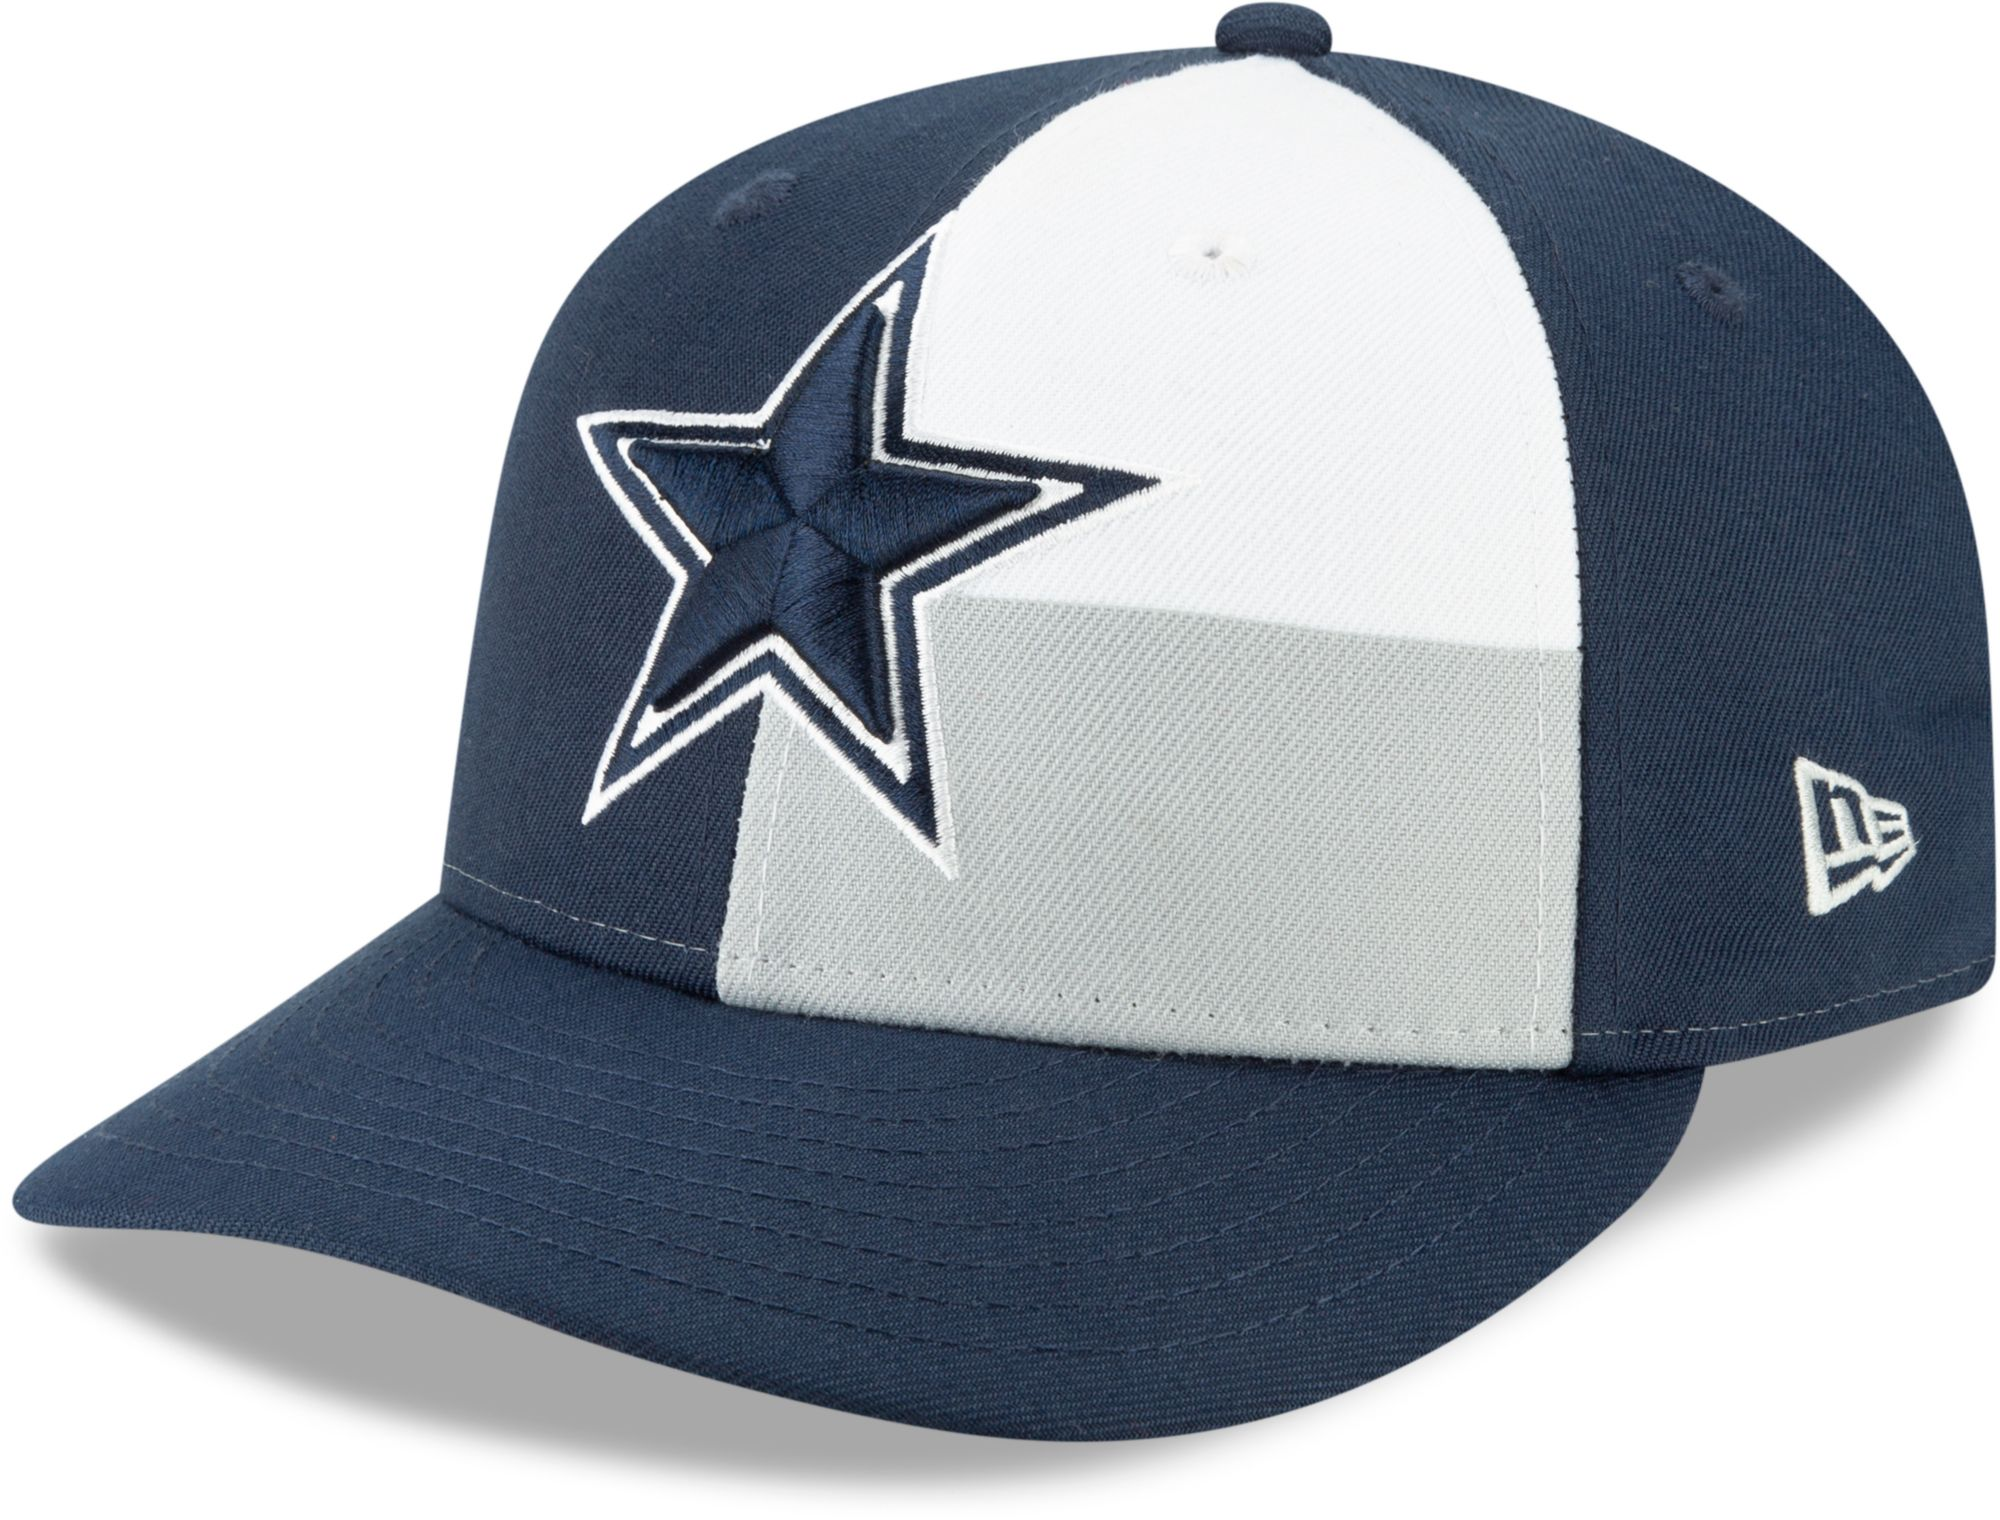 0ffc2e5c067 New Era Men s Dallas Cowboys 2019 NFL Draft 59Fifty Fitted Navy Hat ...